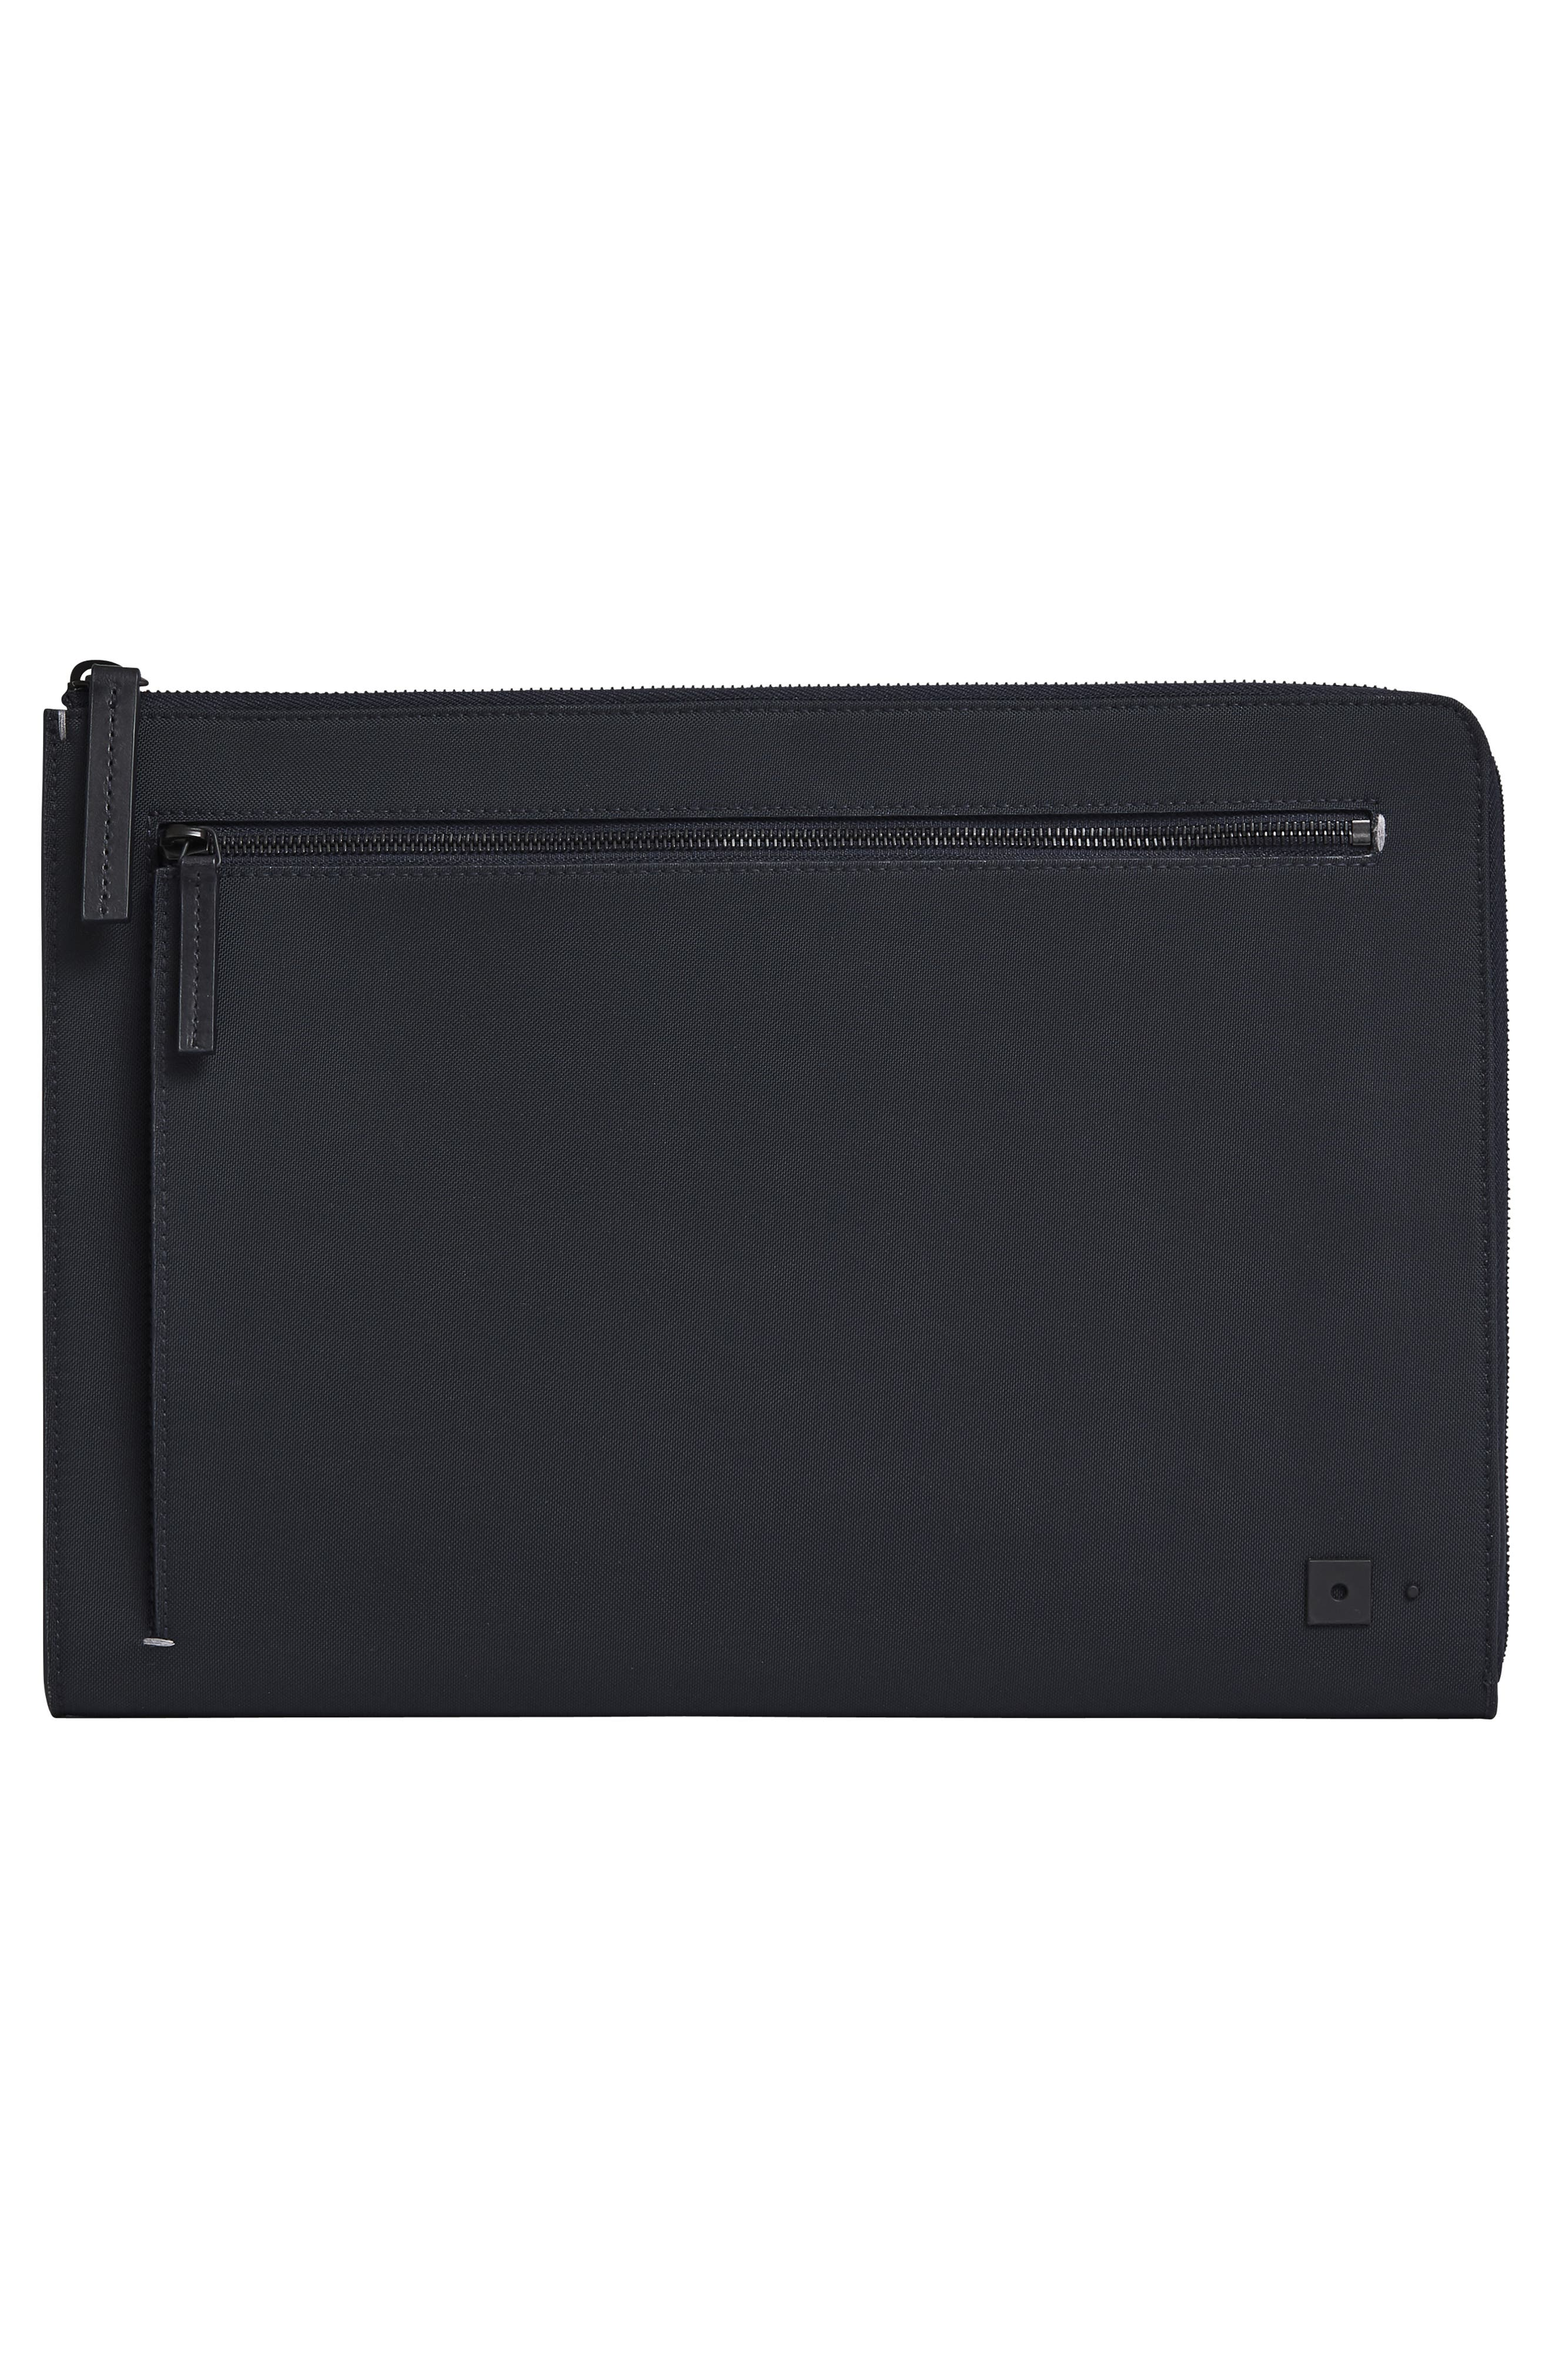 Portfolio Case,                             Alternate thumbnail 7, color,                             BLACK NYLON/ BLACK LEATHER